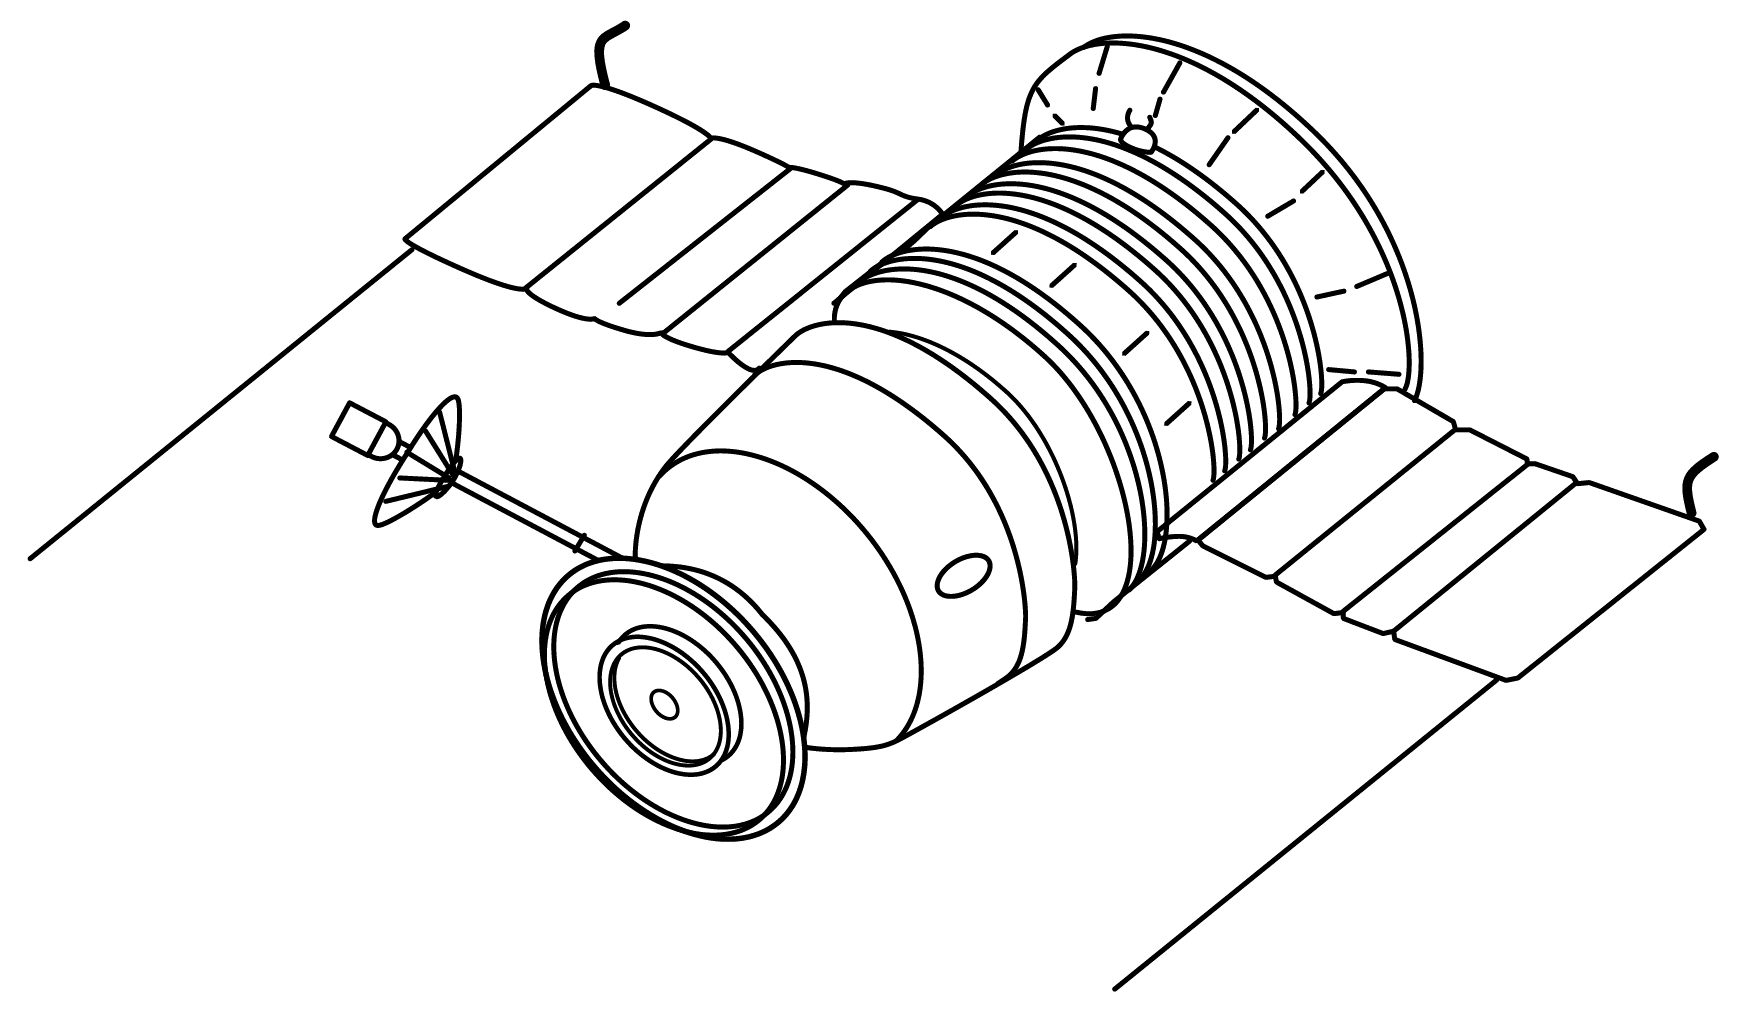 File:Zond L1 drawing.png - Wikimedia Commons